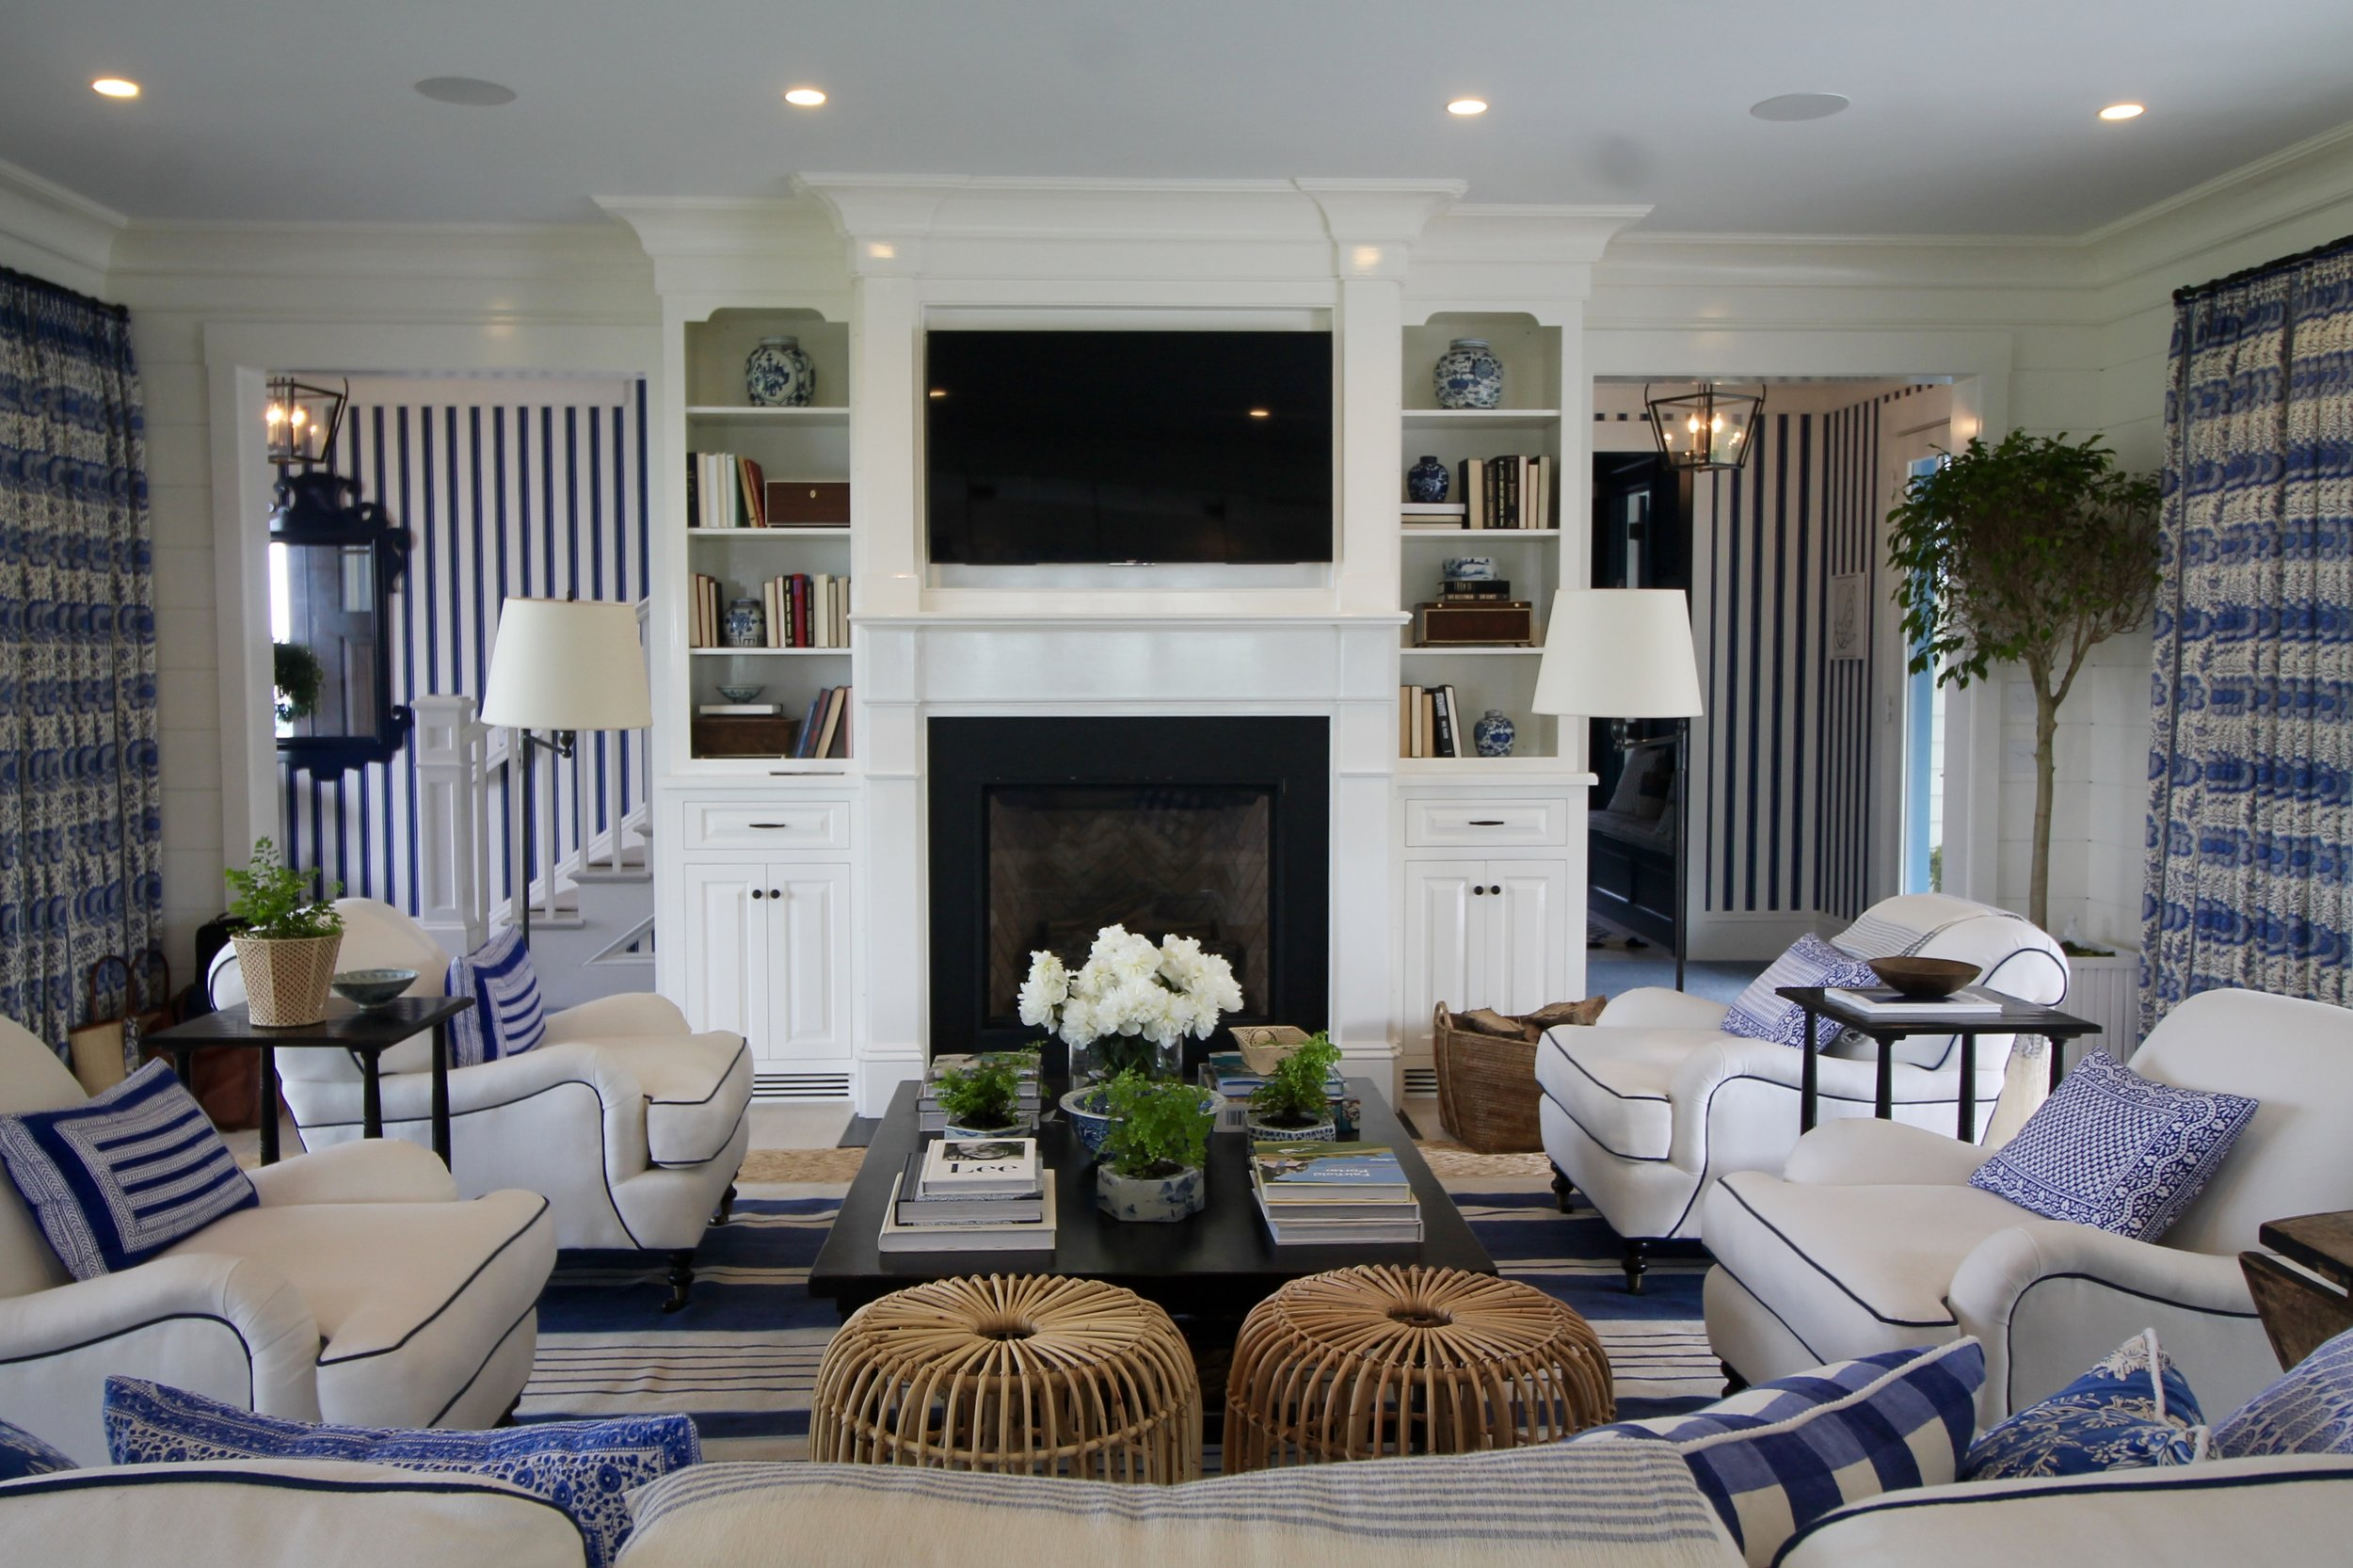 Inside Coastal Living Magazine's 2017 Idea House in Newport, Rhode Island. Images property of The Entertaining House